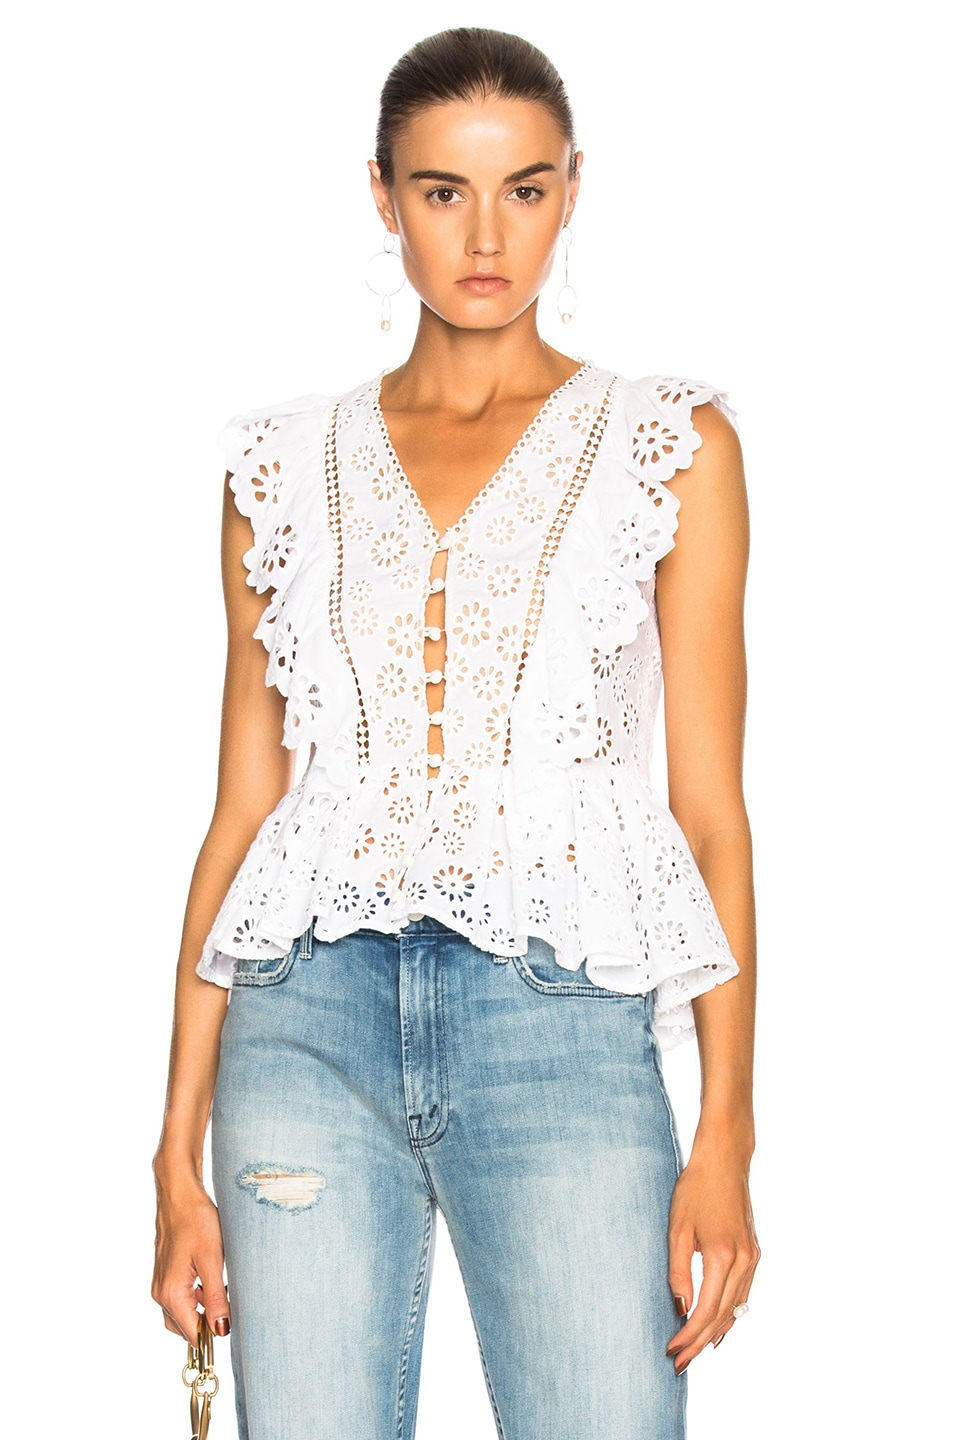 SEA LACE BACK TANK IN WHITE